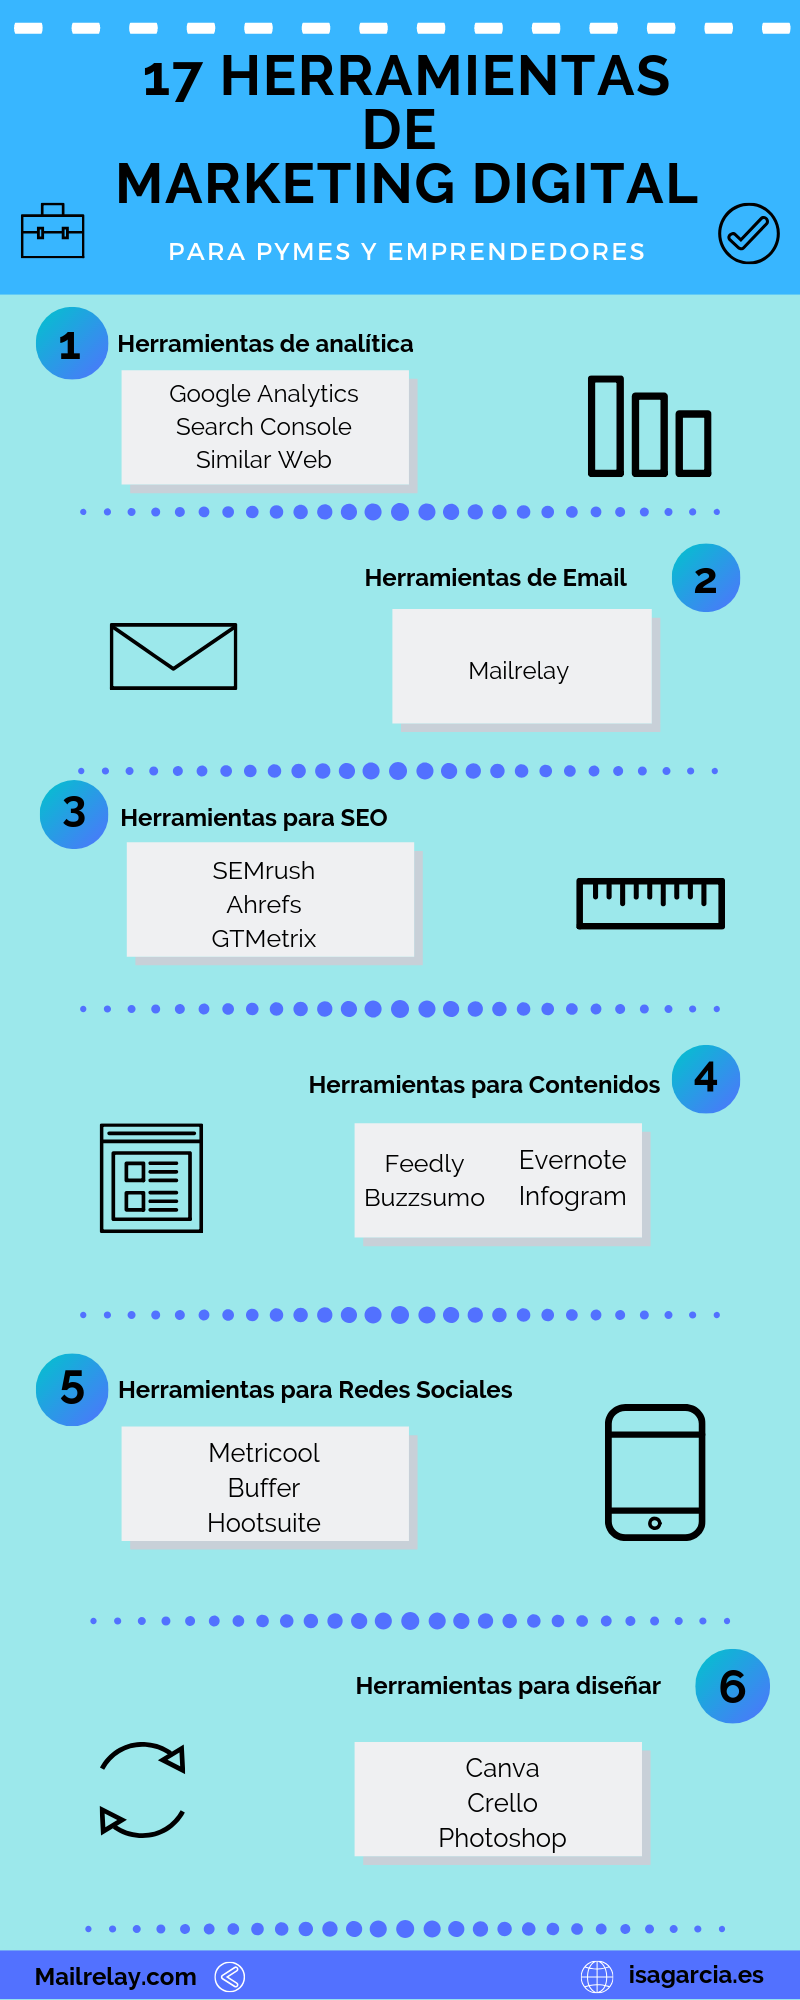 17 herramientas de marketing digital